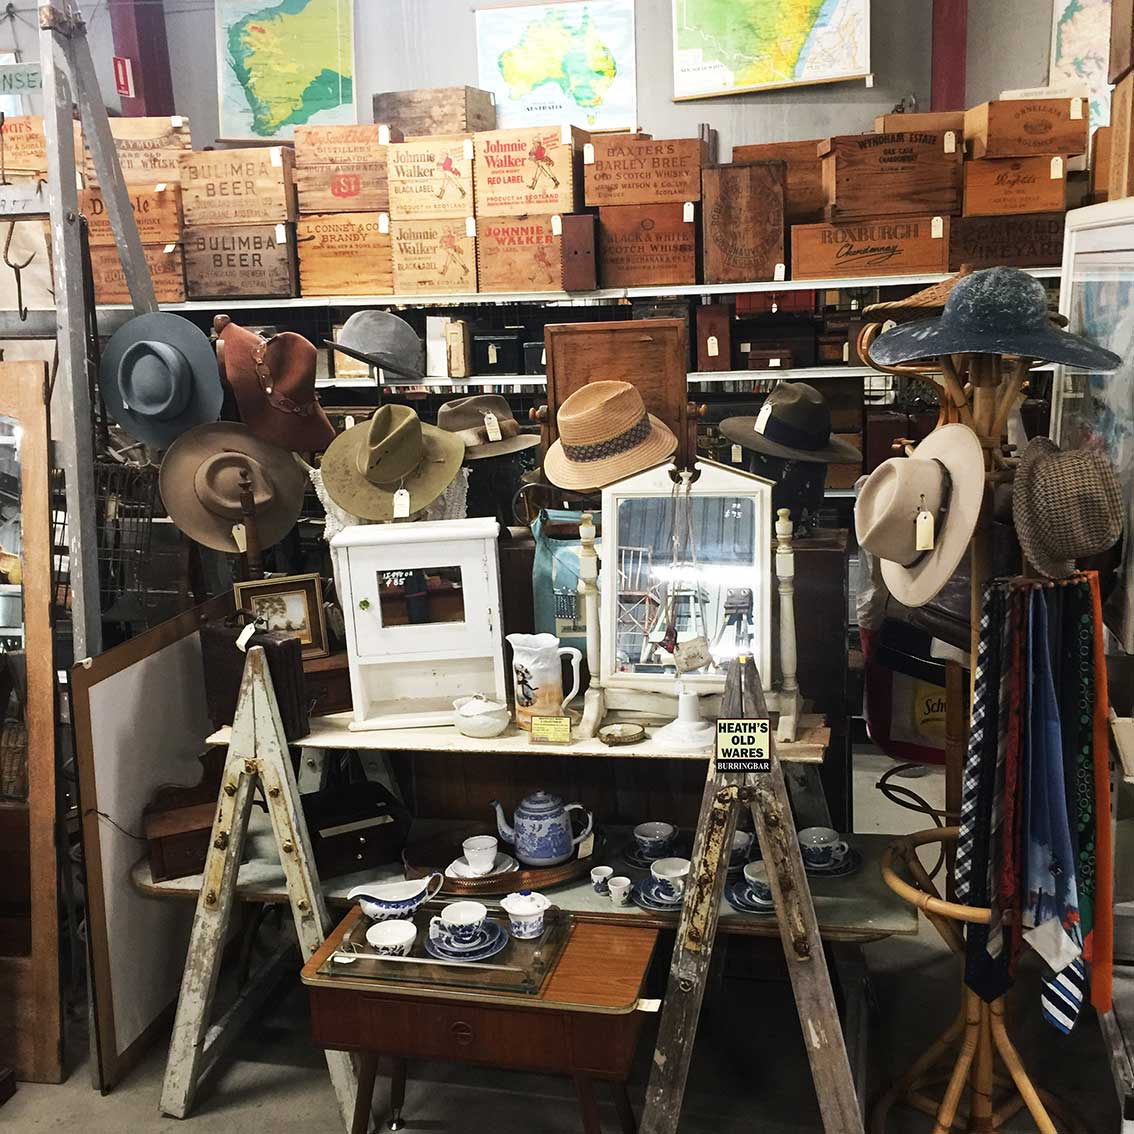 Used Vintage Akubra hats for sale at Heaths Old Wares, Collectables, Antiques & Industrial Antiques, 19-21 Broadway, Burringbar NSW 2483 Ph 0266771181 open 7 days